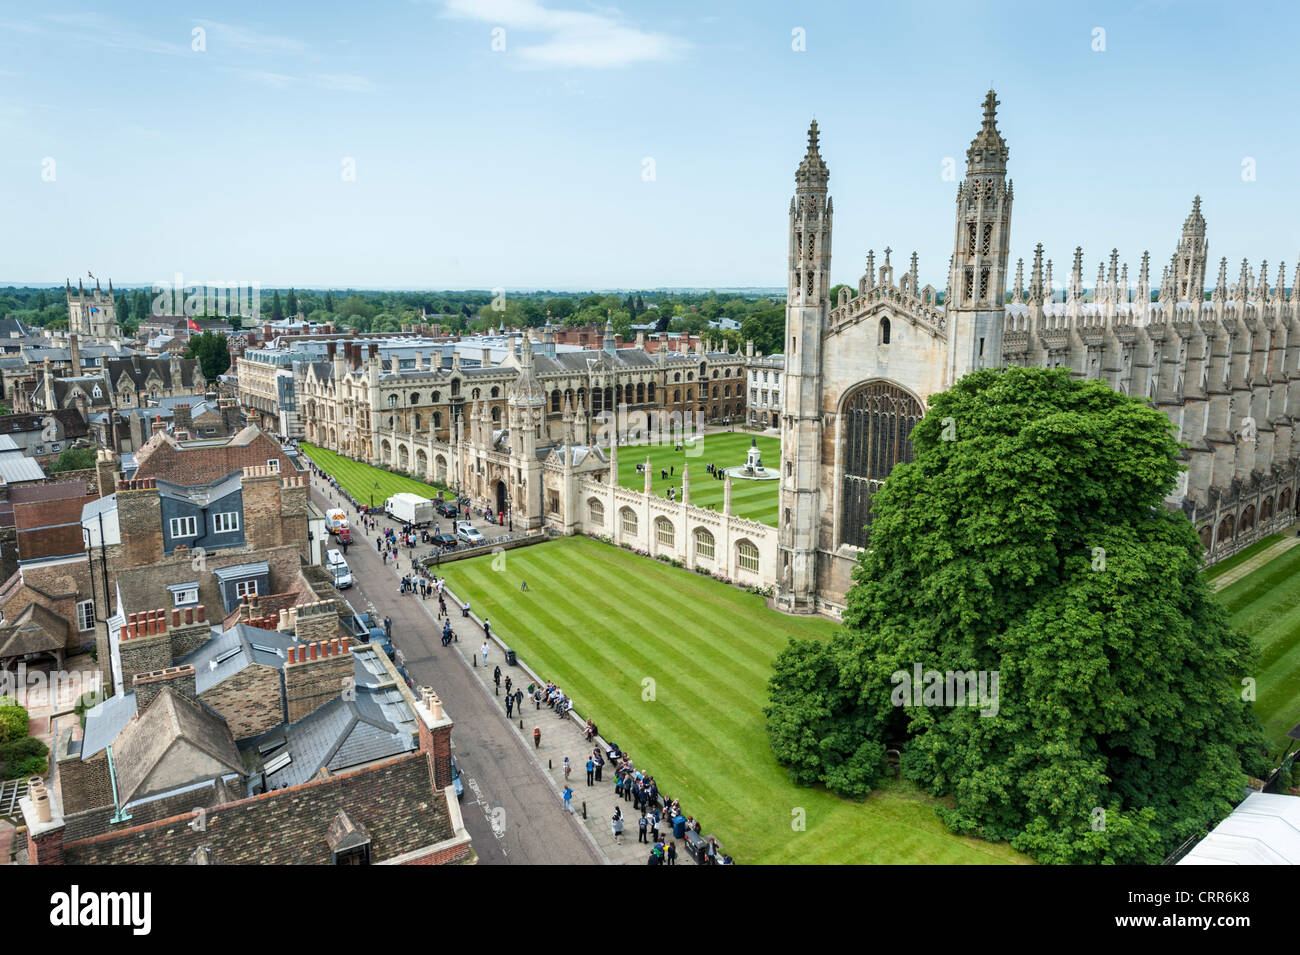 Kings College Chapel and kings Parade Cambridge UK. Part of Cambridge University. Aerial view - Stock Image